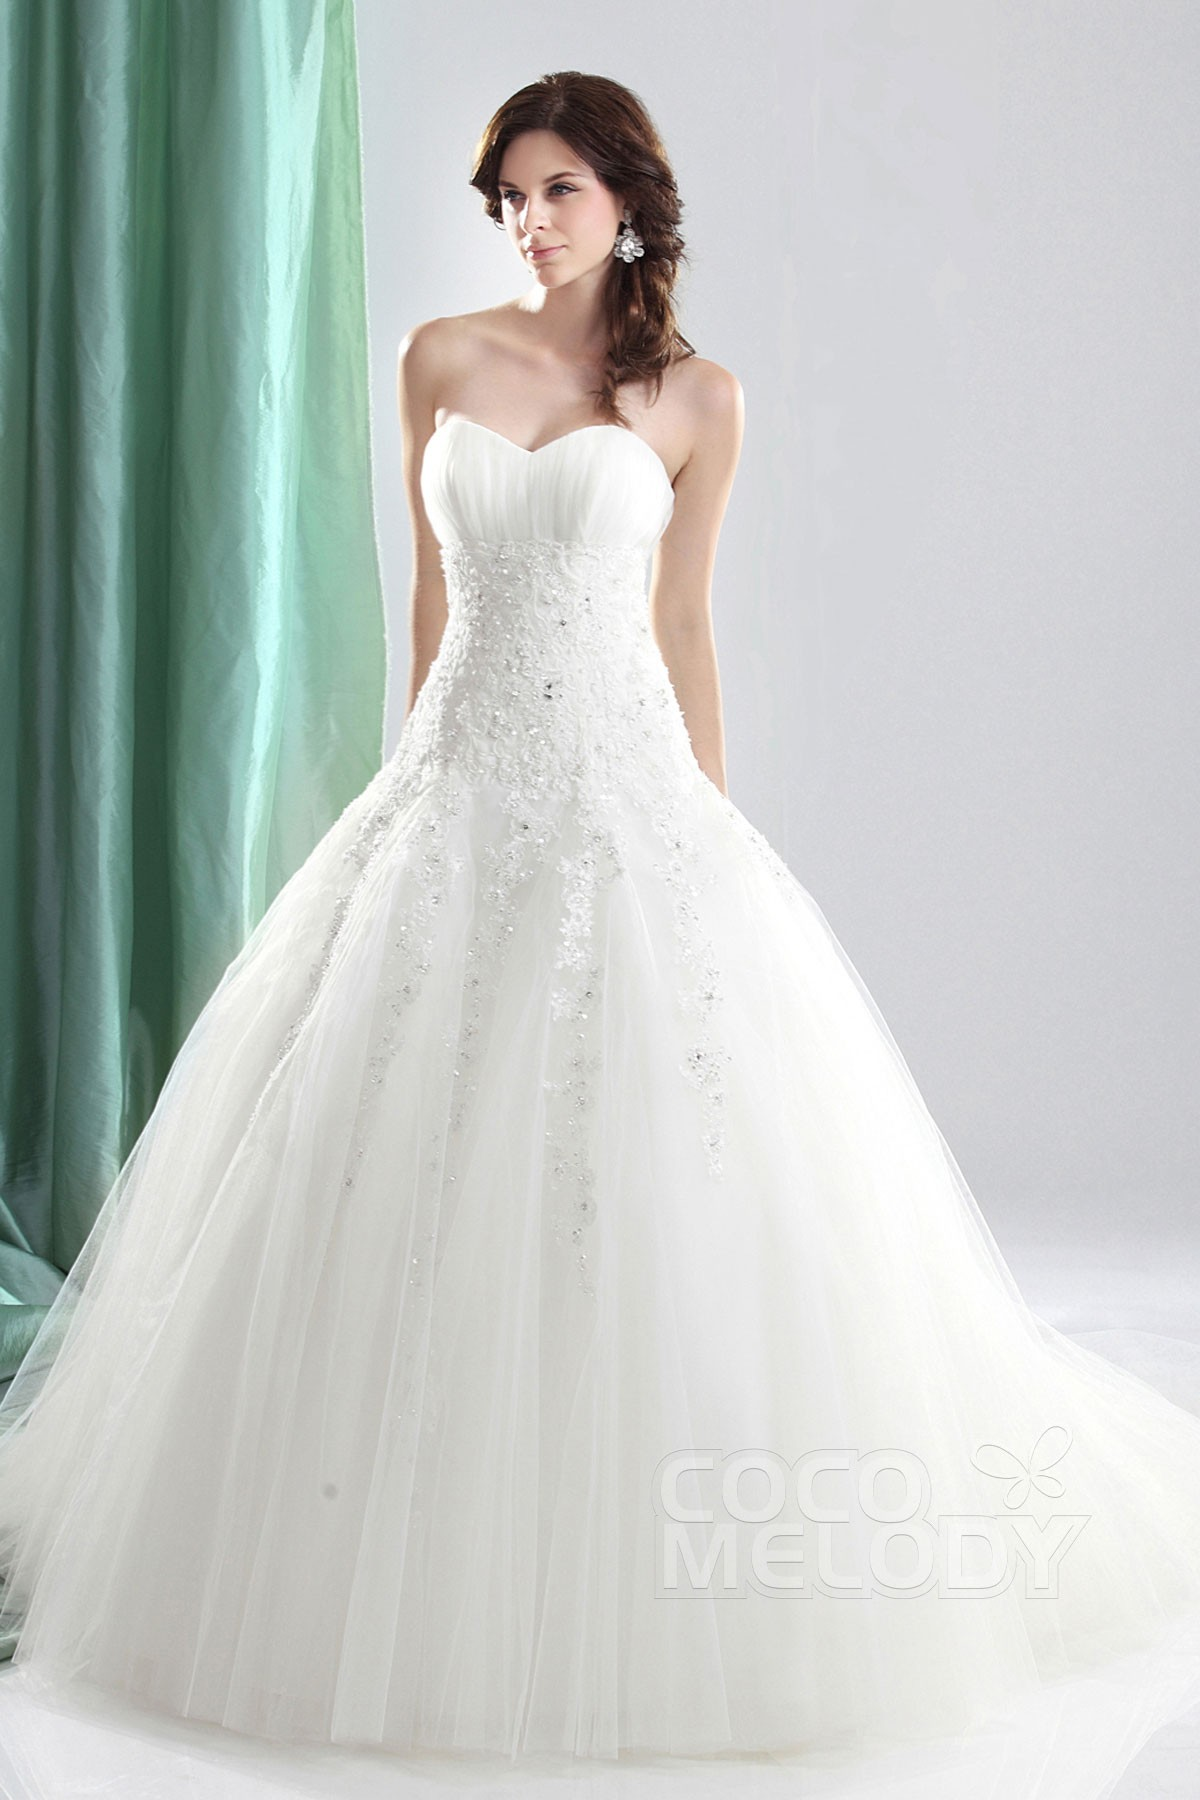 cocomelody ball gown sweetheart court train tulle wedding